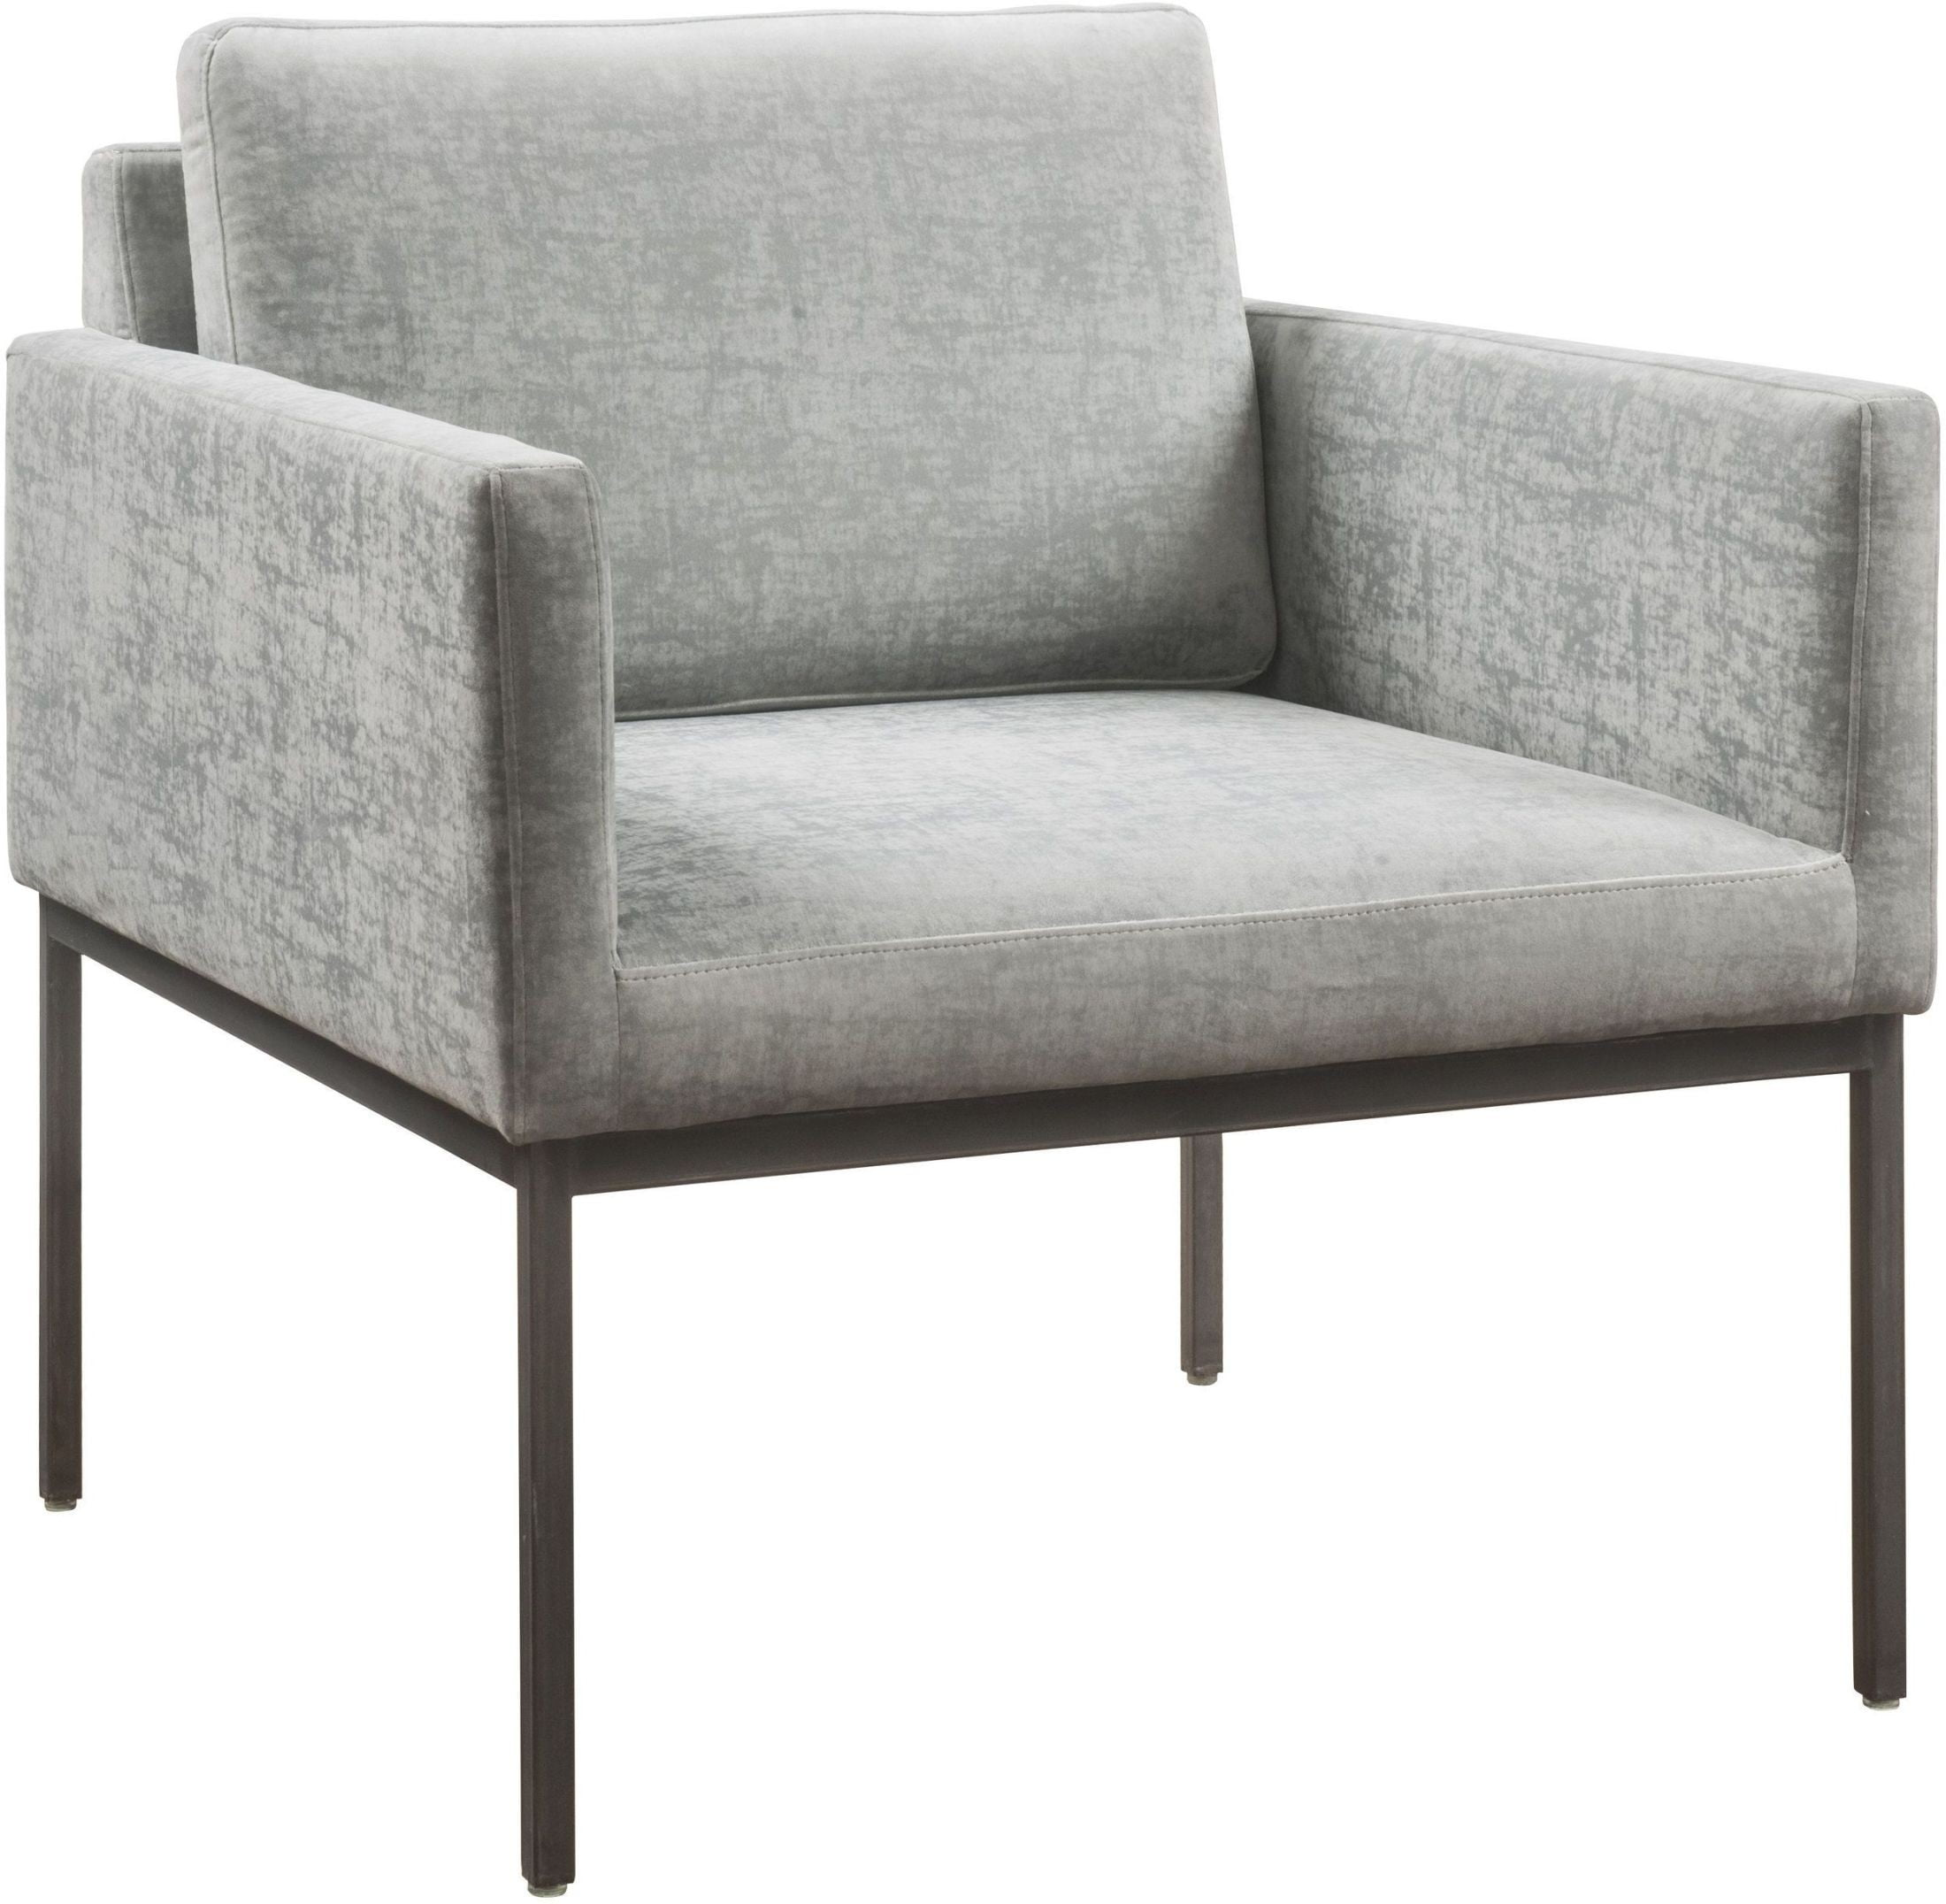 Canton Grey Velvet Chair from TOV Furniture A191